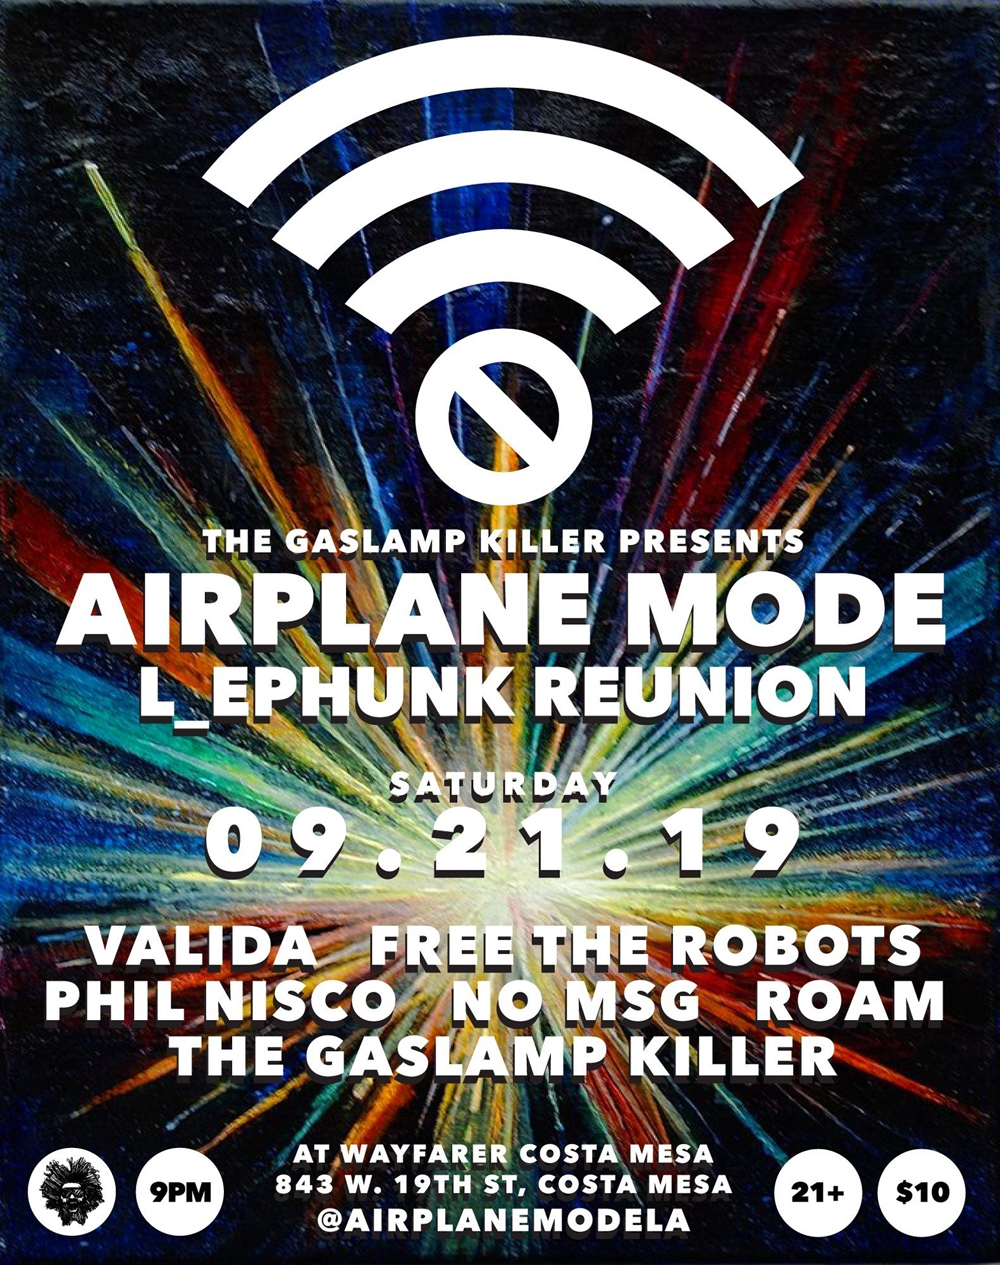 Airplane Mode: L_ephunk Reunion feat. The Gaslamp Killer, Free The Robots, Valida and more